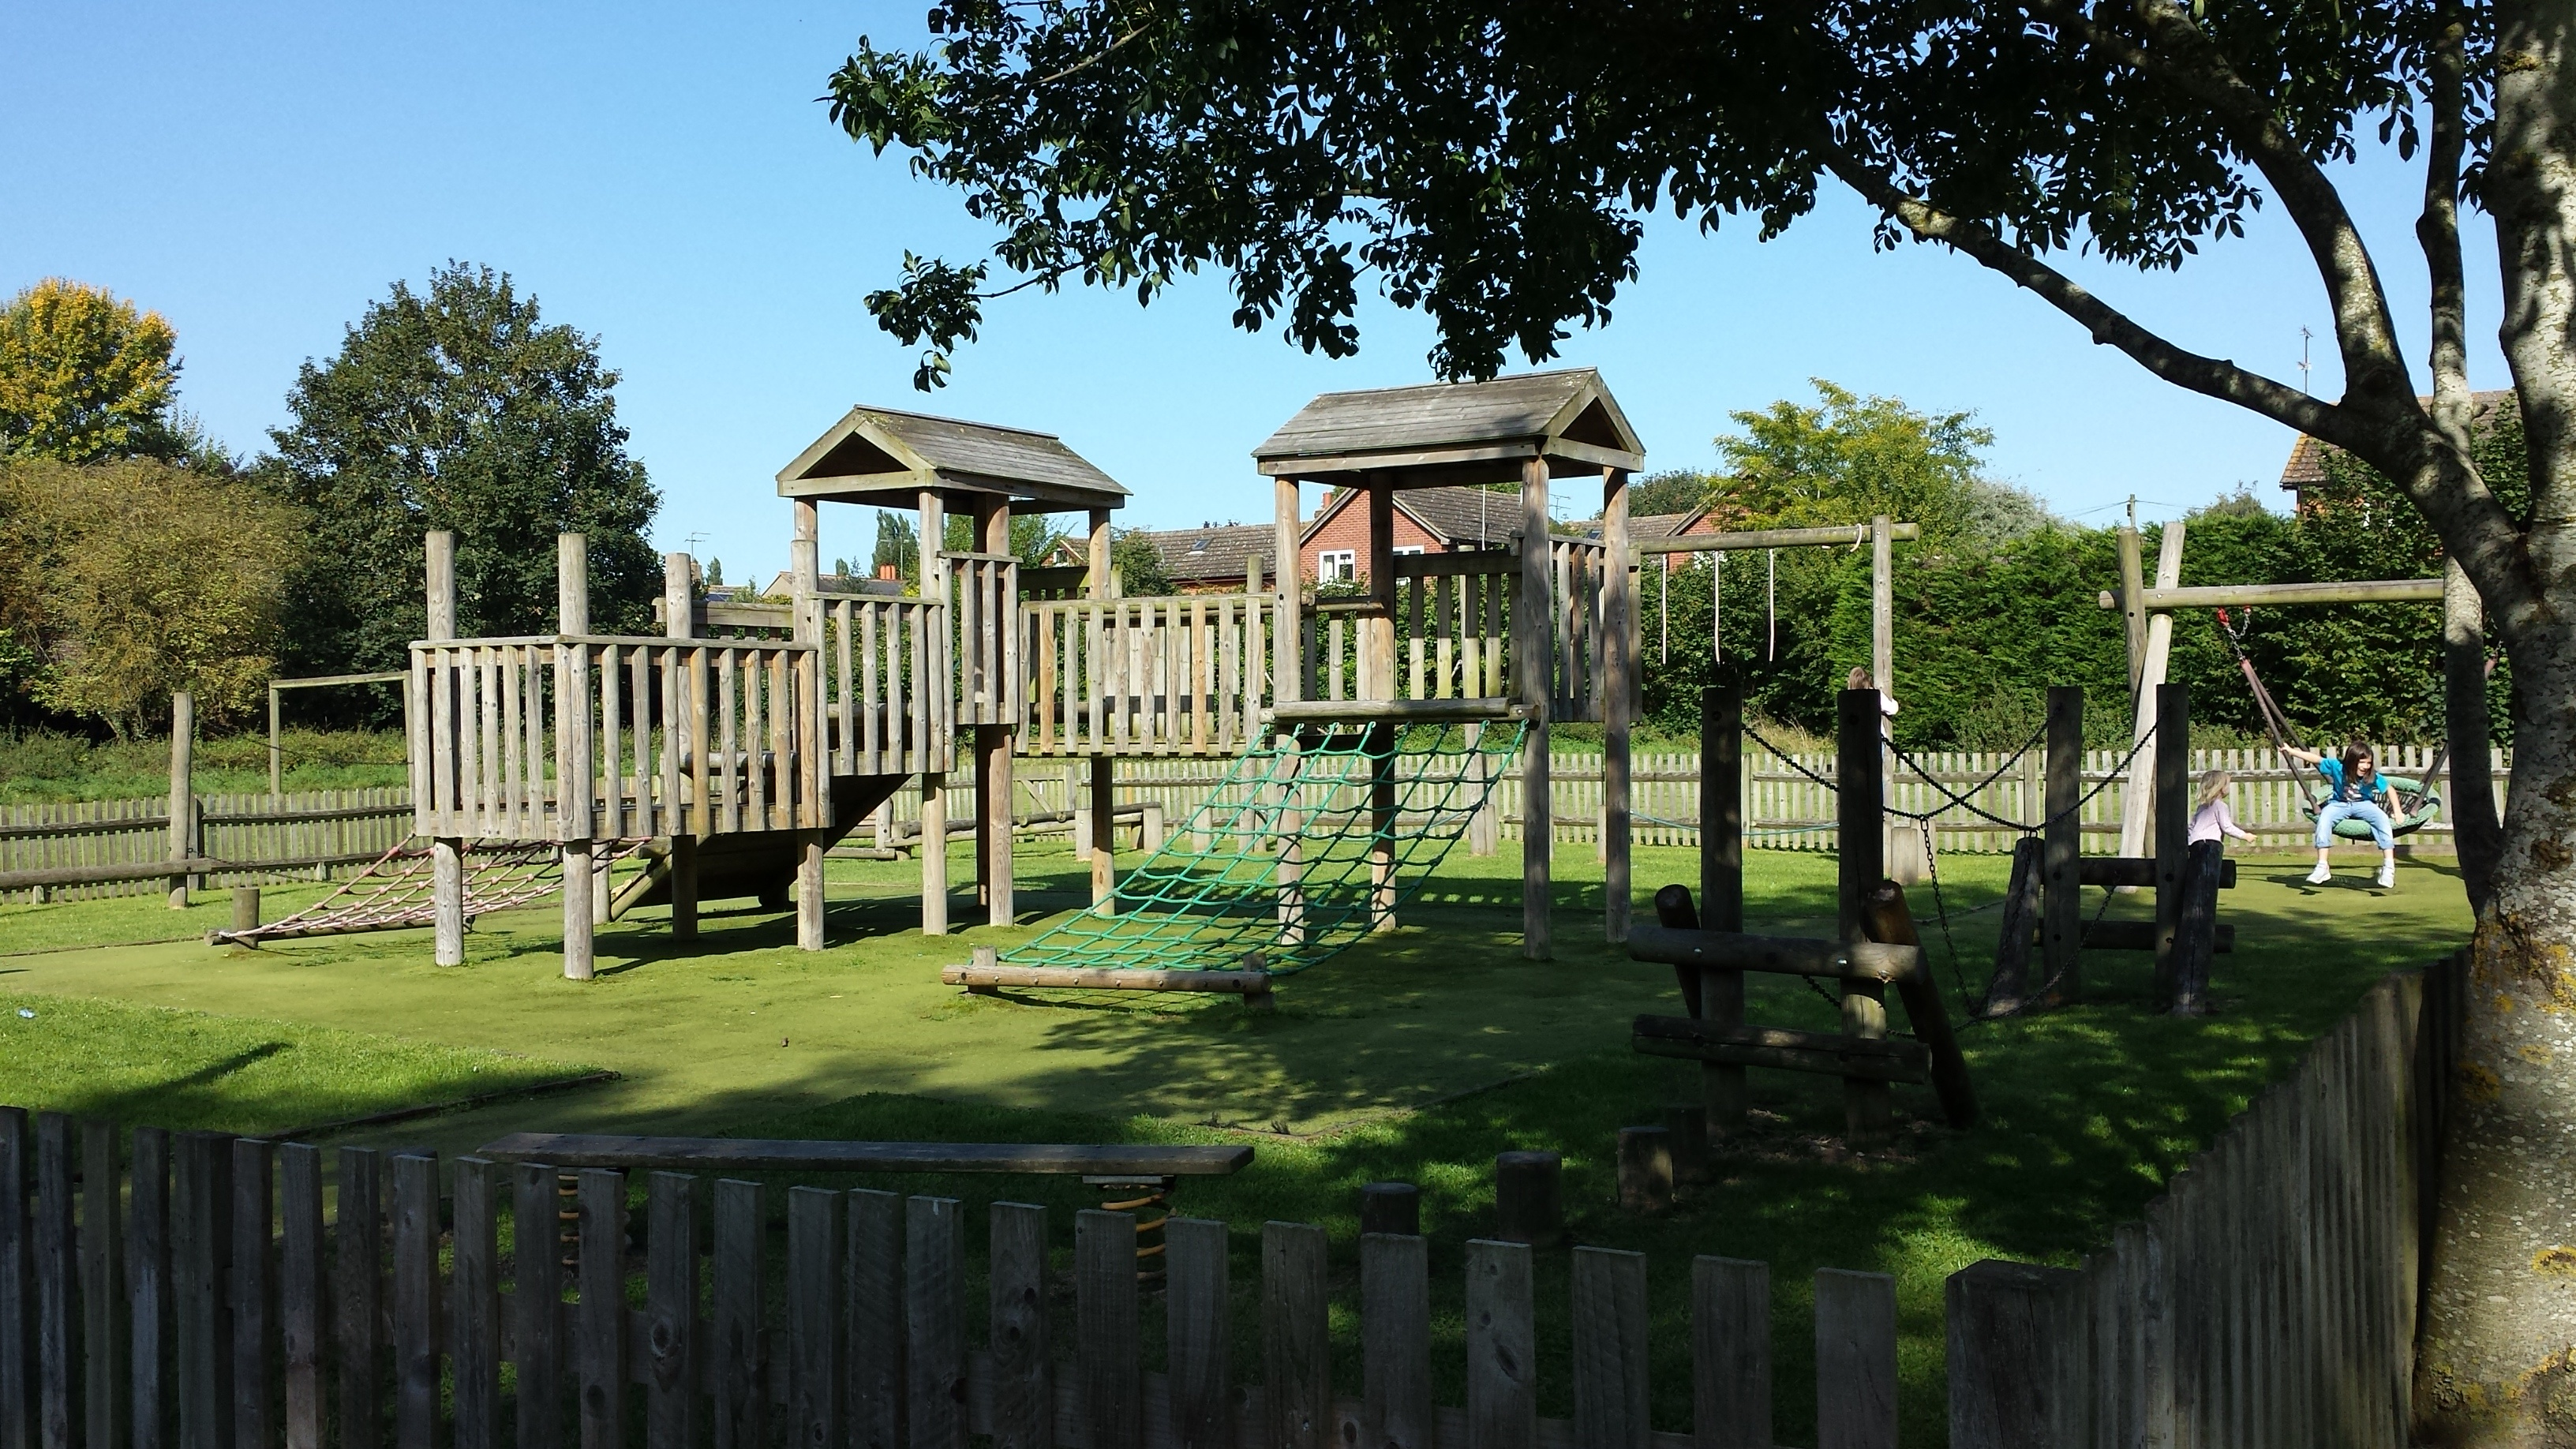 King's Meadow play area